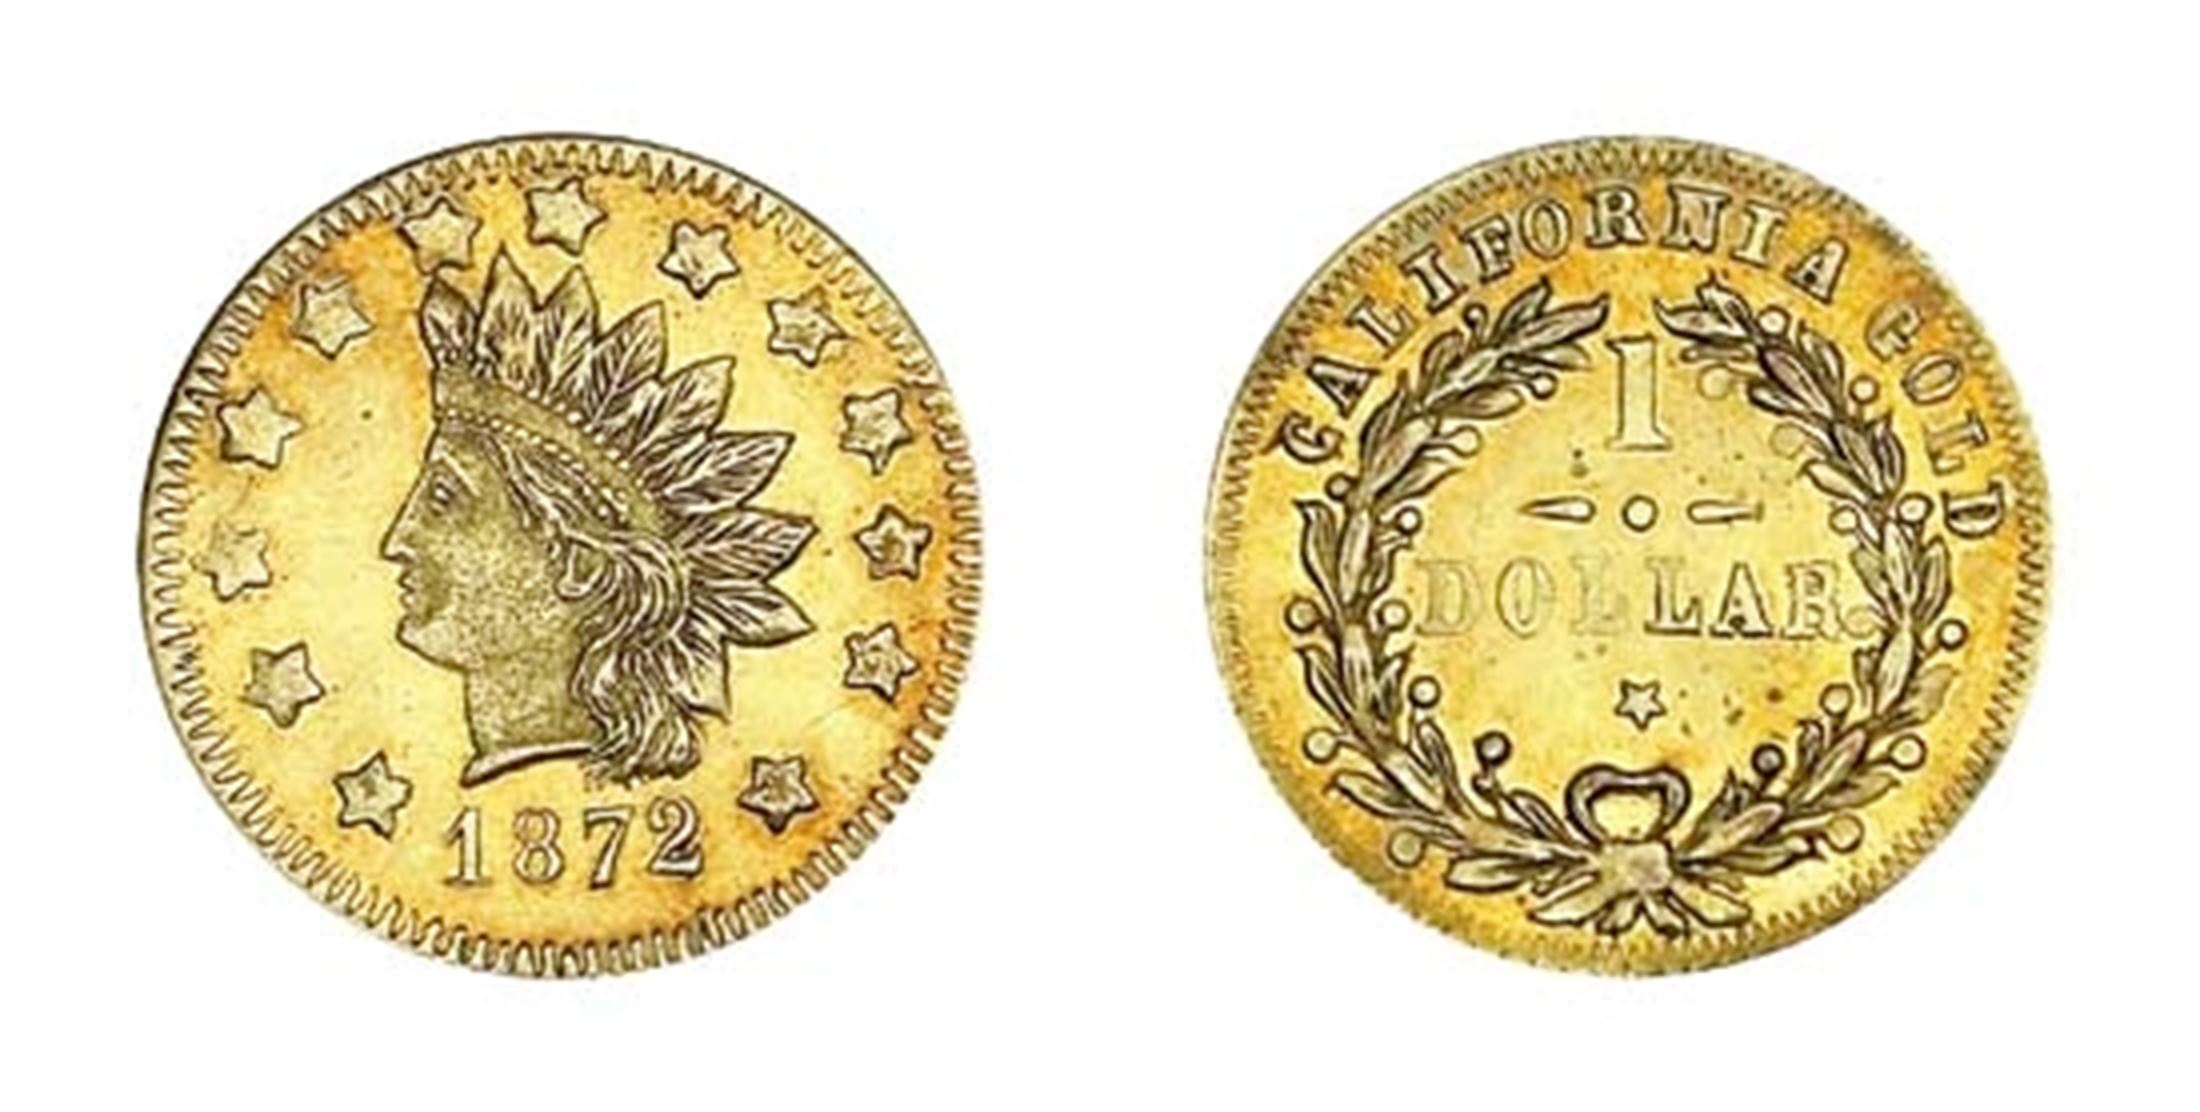 """PCGS MS63, ex Jay Roe, Lot 585<BR>Image courtesy of <a href=""""http://www.bowersandmerena.com"""" target=""""_blank"""">Bowers and Merena Auctions</a>"""